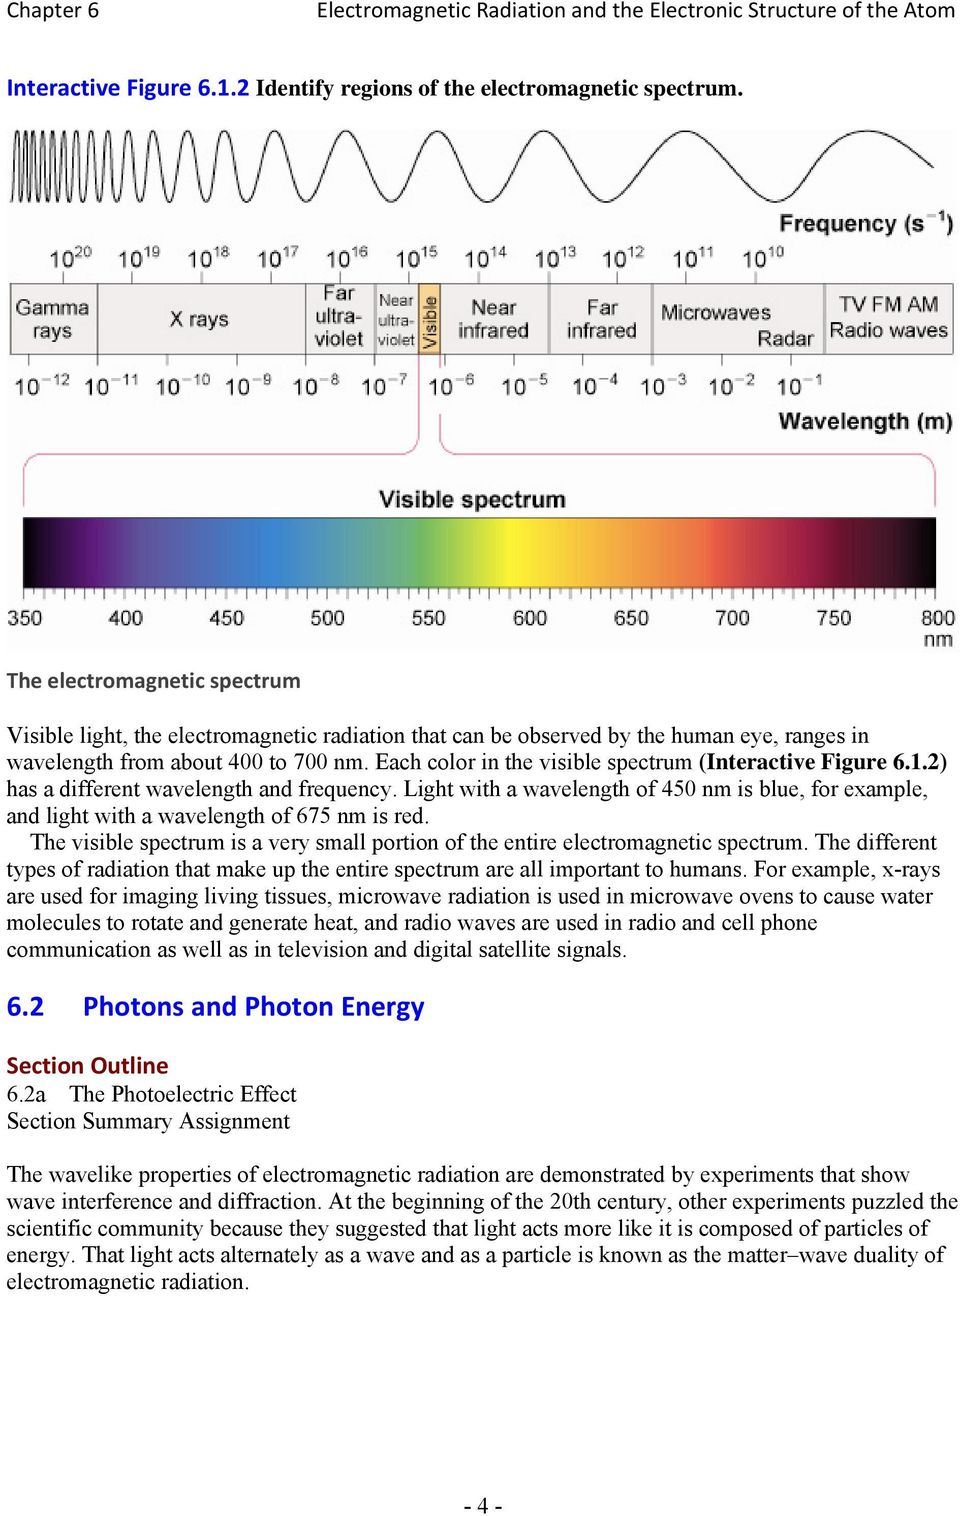 Each color in the visible spectrum (Interactive Figure 6.1.2) has a different wavelength and frequency.